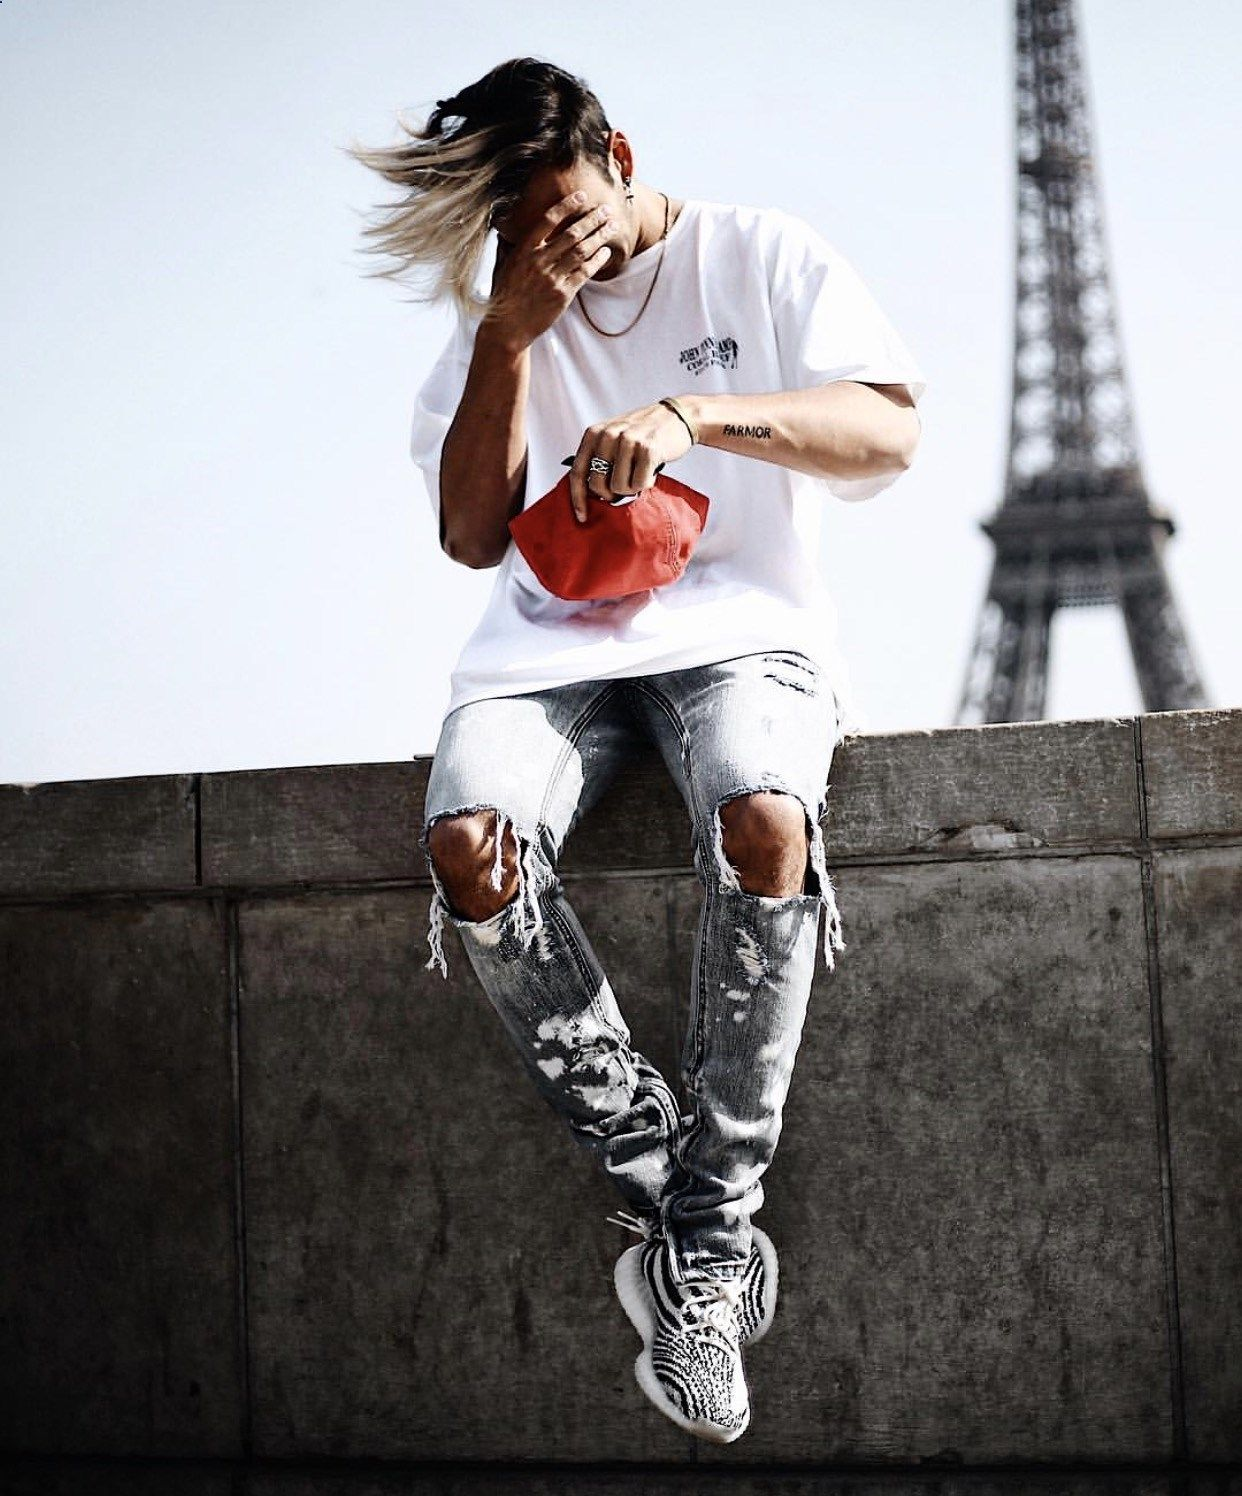 b555eeab4c9 In Paris. Via   maiknila on Instagram. Featuring the  adidas Yeezy Boost  350 V2 Zebras sneakers.